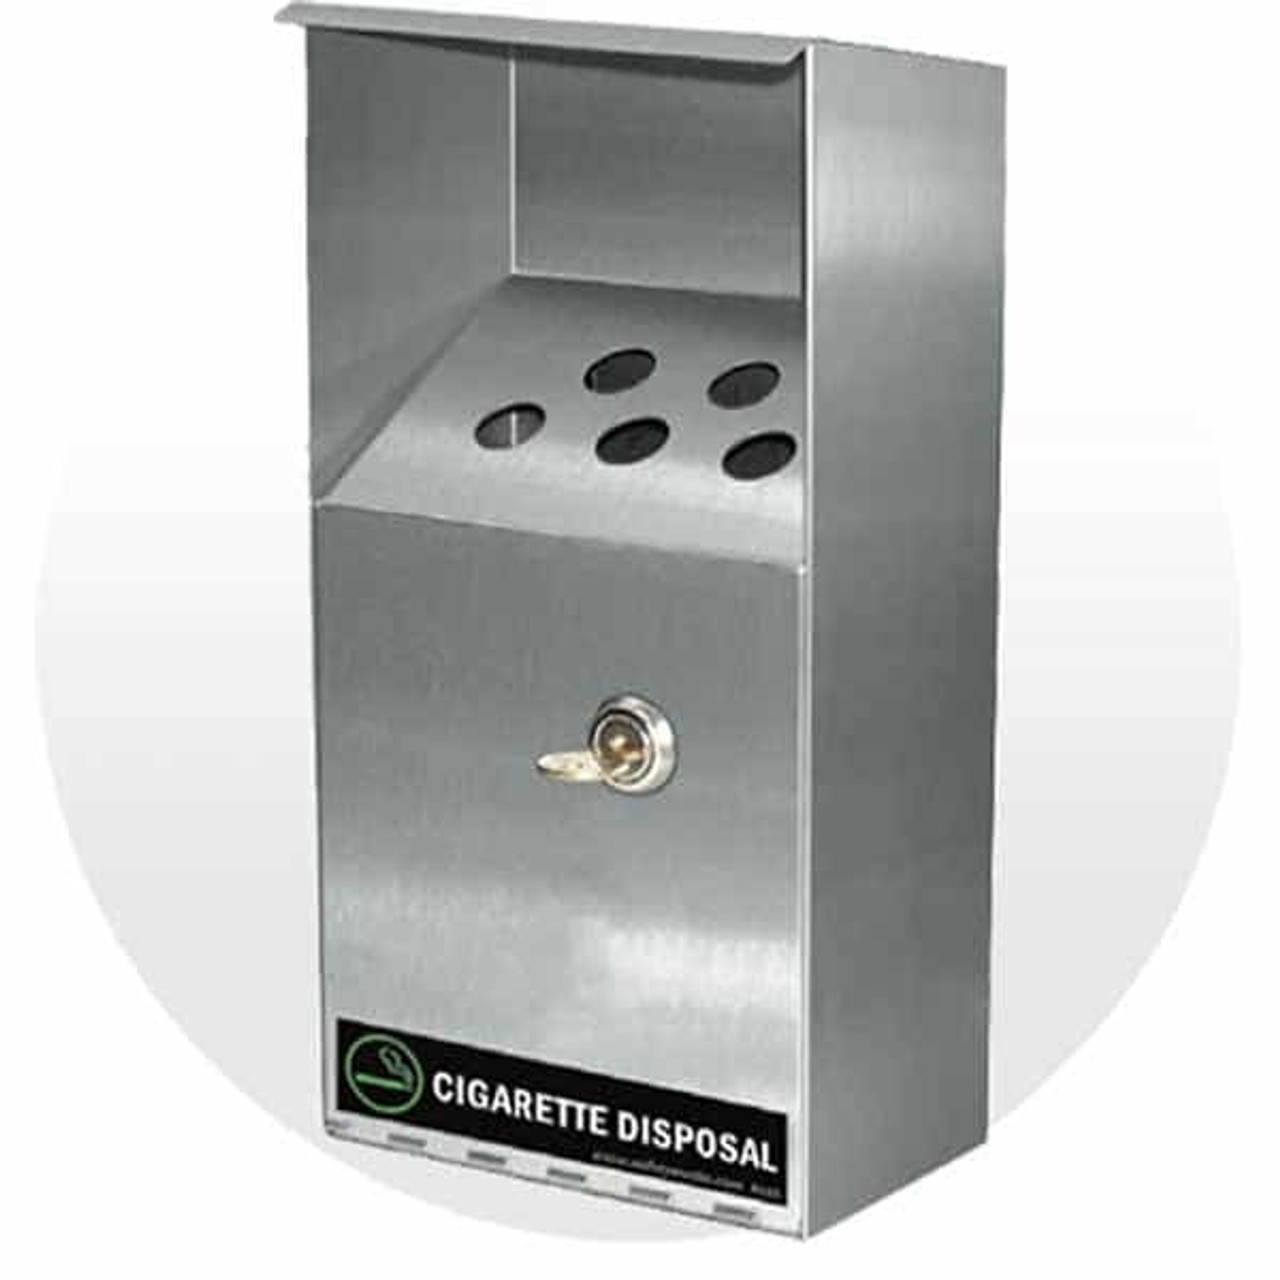 Cigarette Disposal Containers & Fireproof Apron